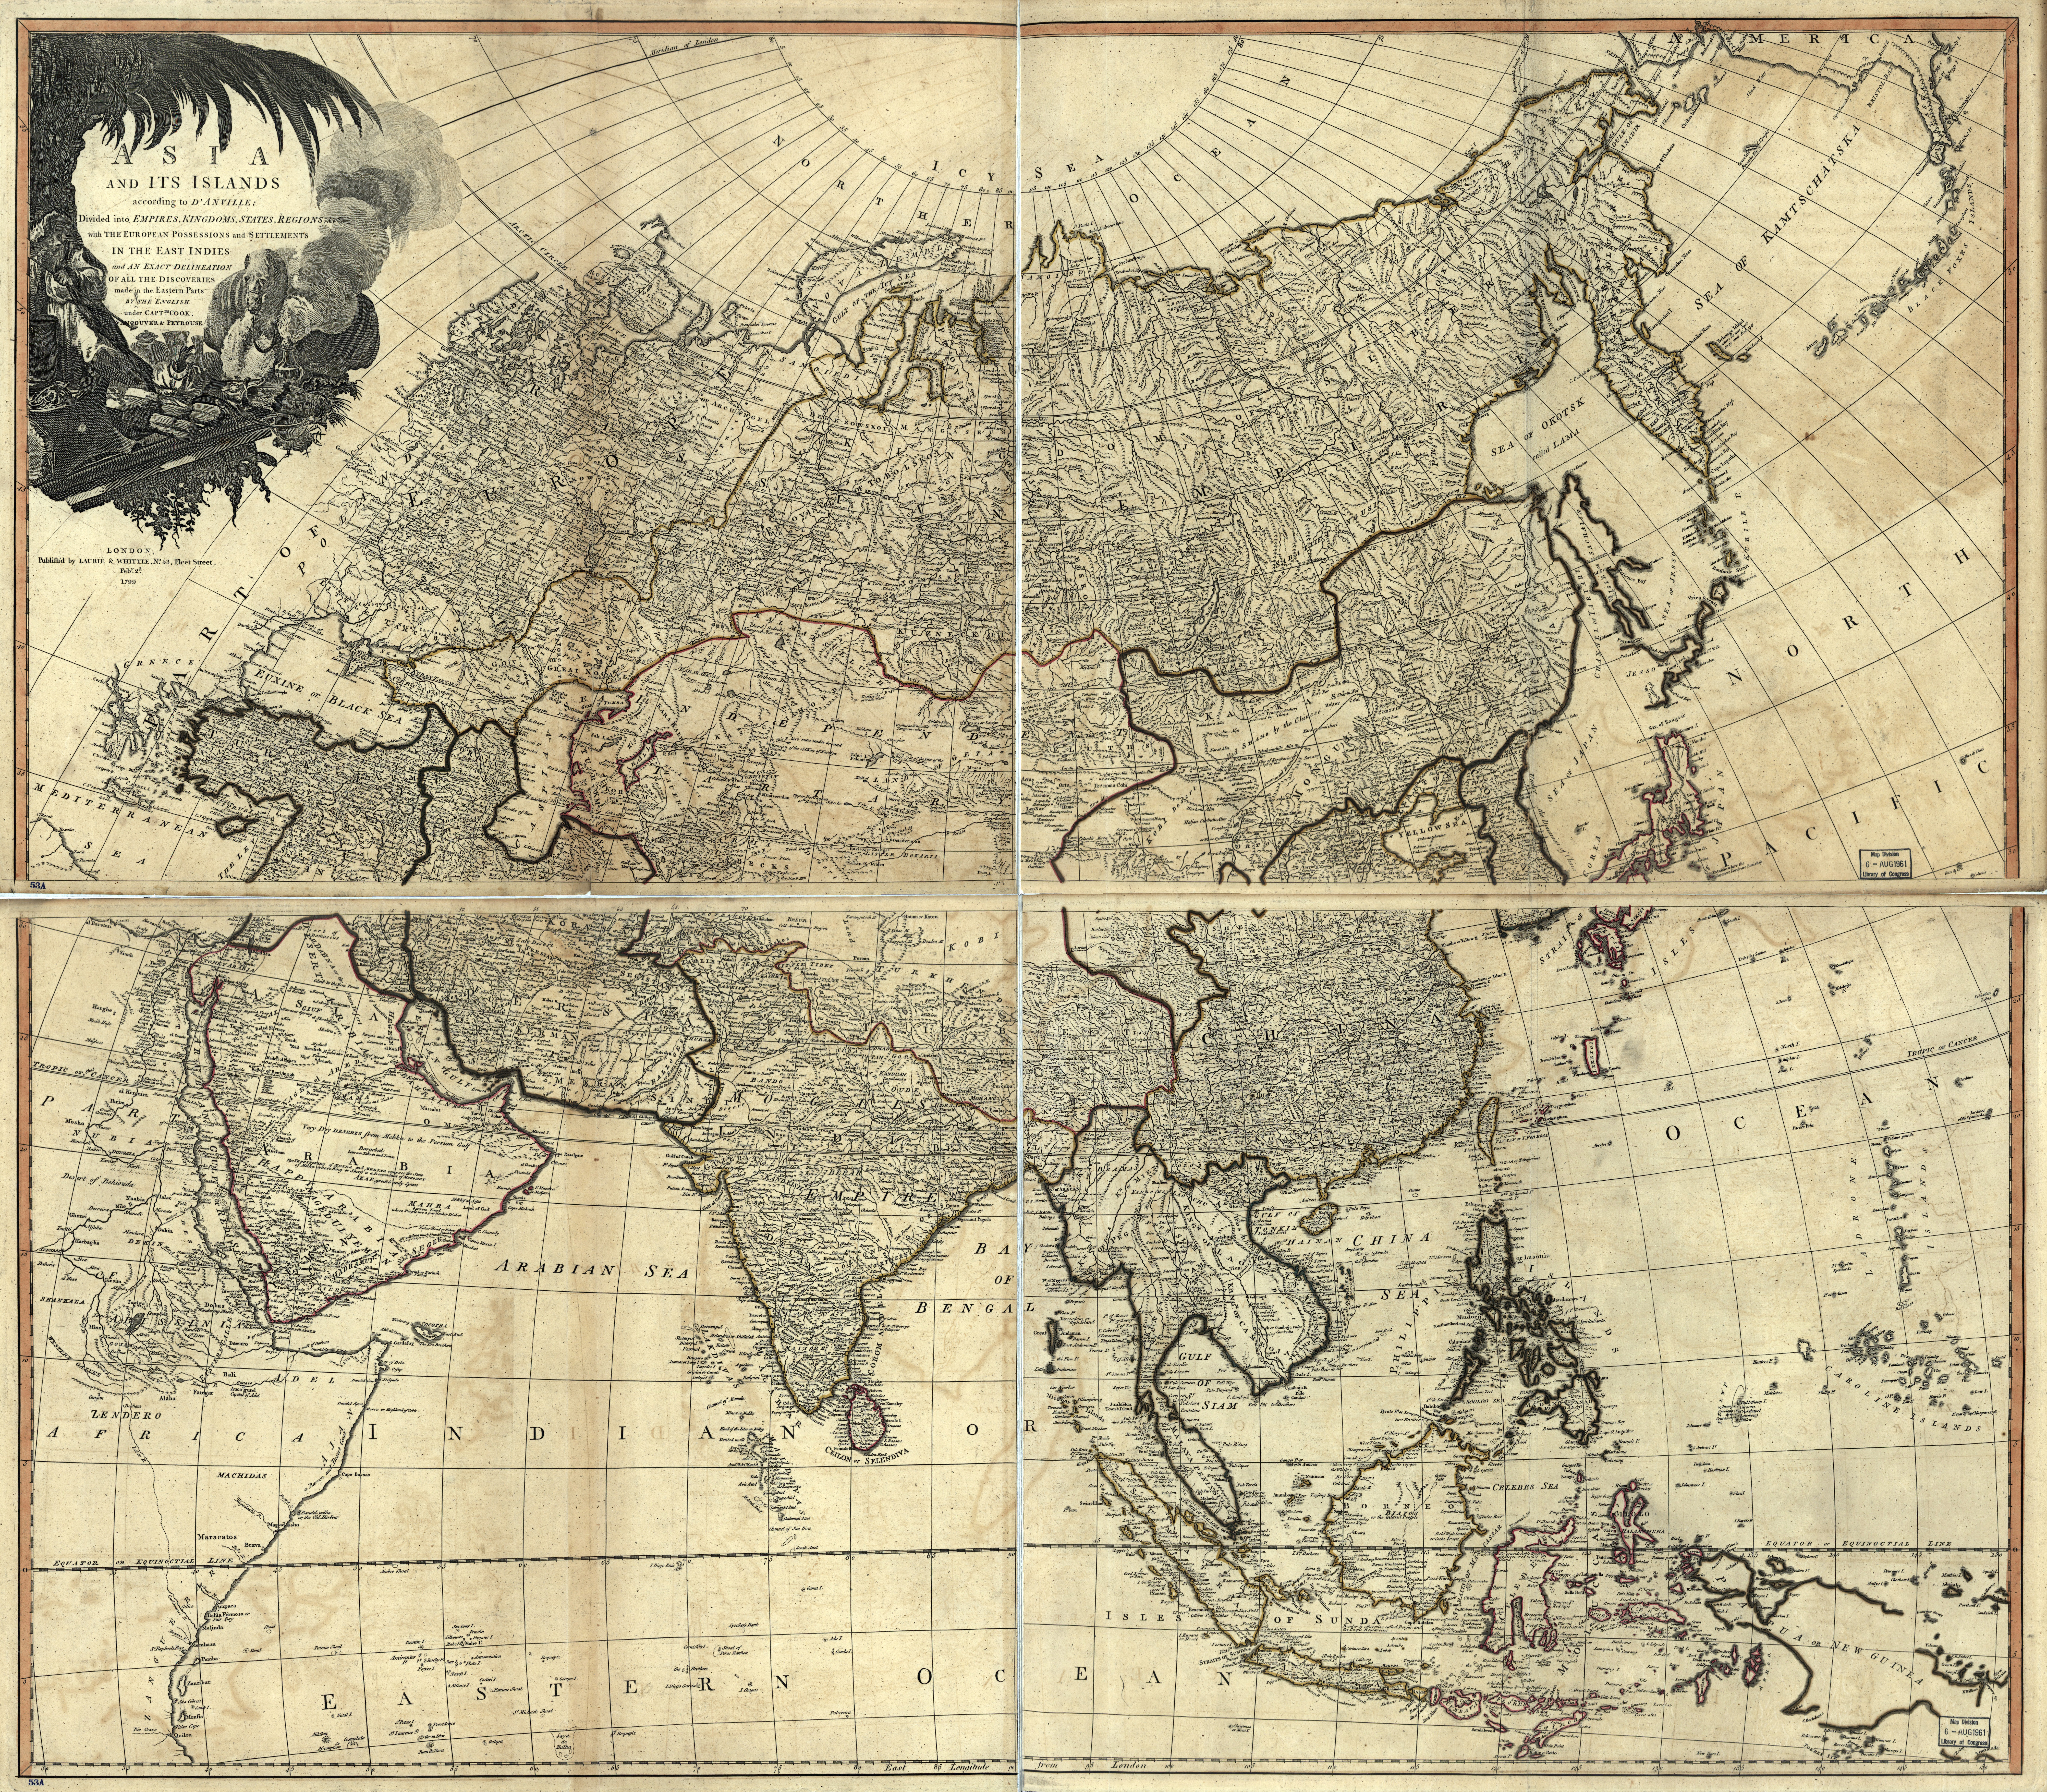 Map Of Asia High Resolution.In High Resolution Old Political Map Of Asia 1799 Old Maps Of